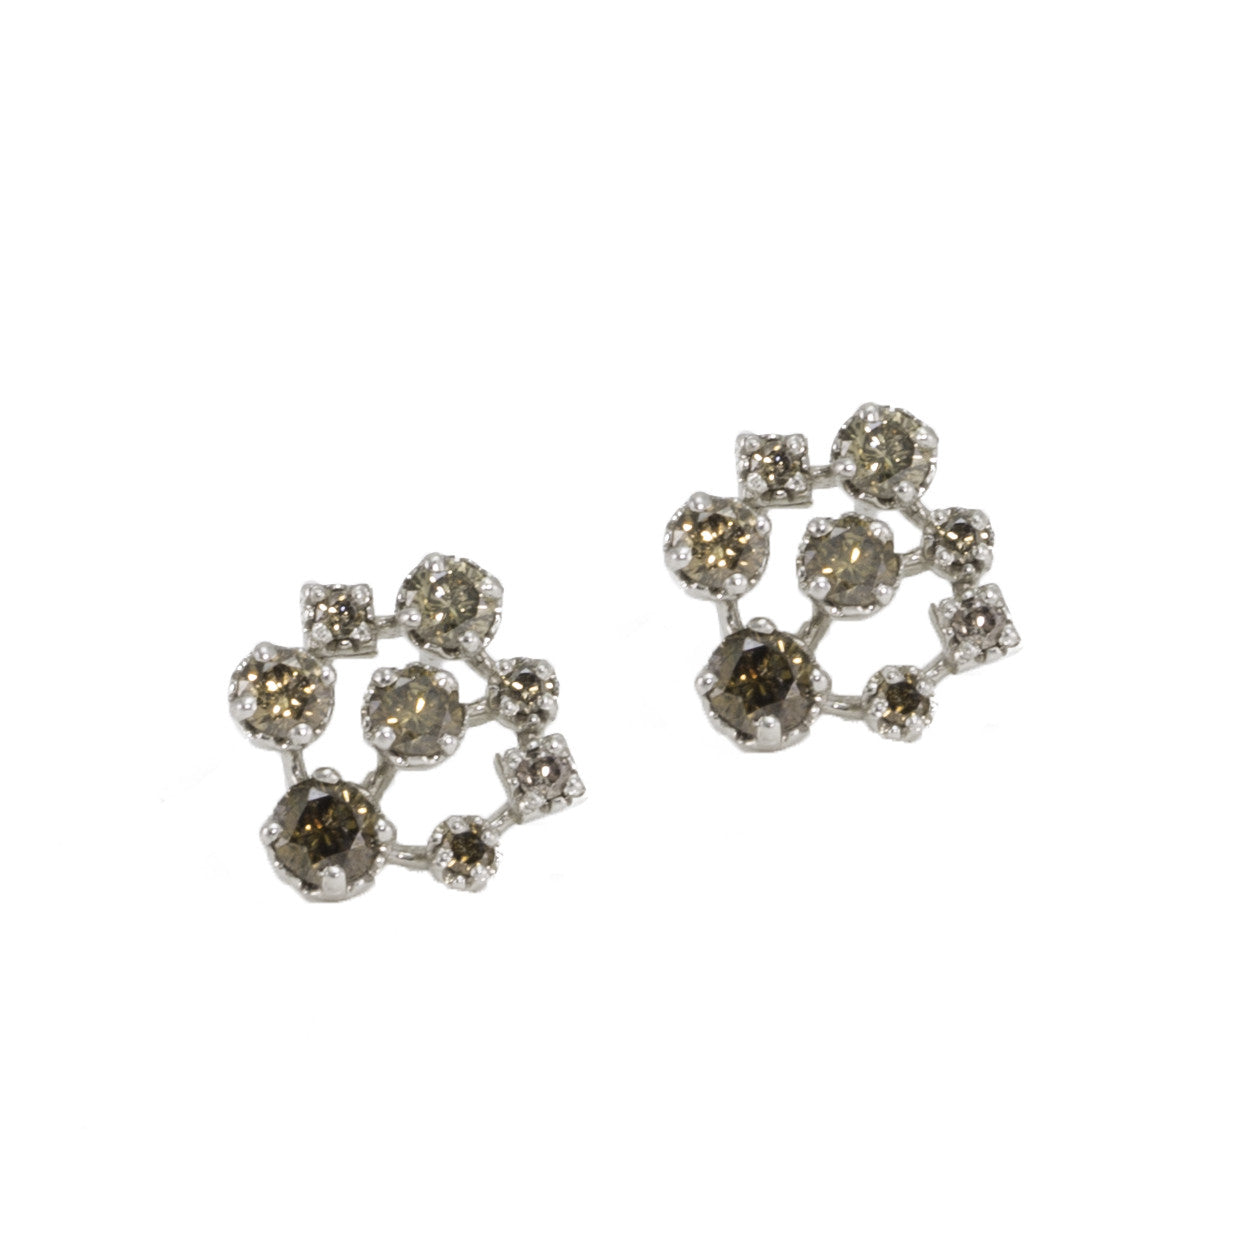 zoom large diamond todd in designers earrings product tap pownell champagne gold stud